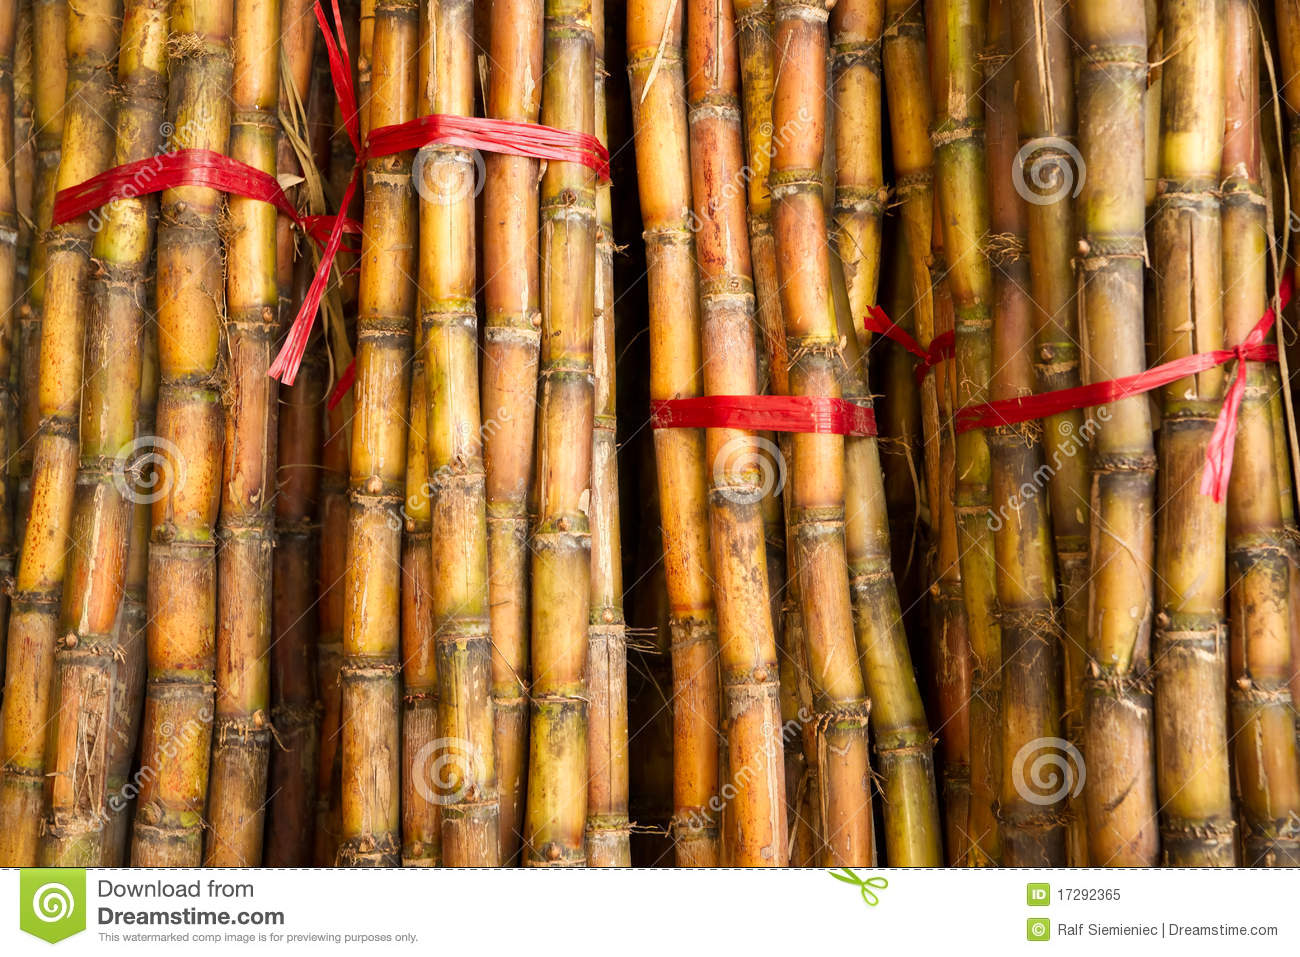 Bamboo Stcik People ~ Bamboo sticks for sale royalty free stock photo image